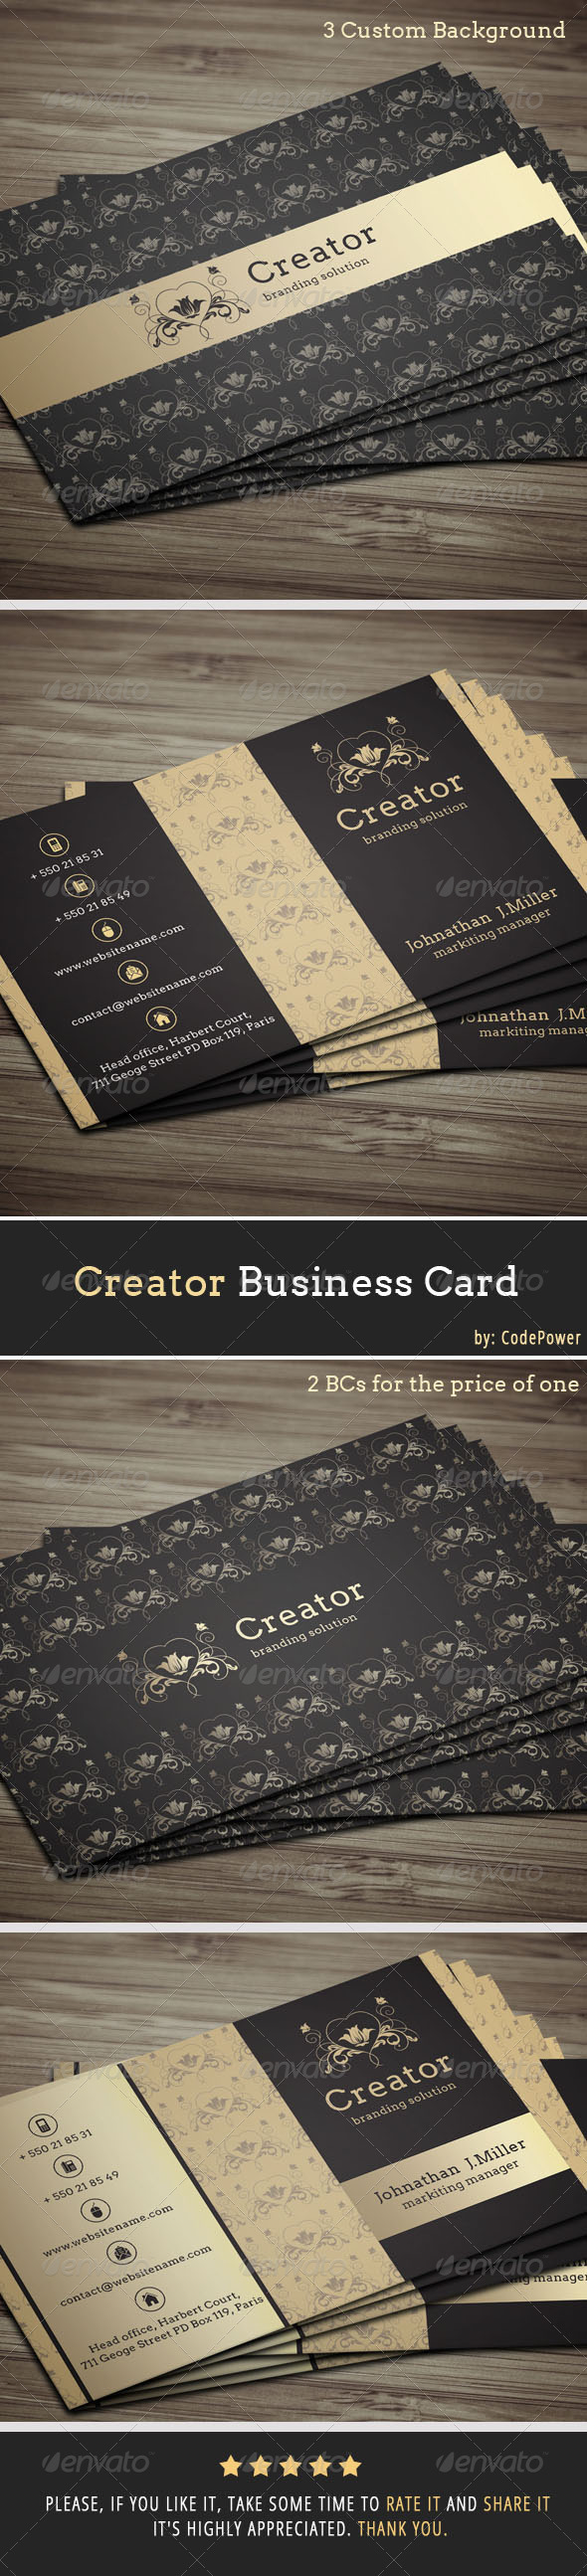 Creator Business Card - Creative Business Cards